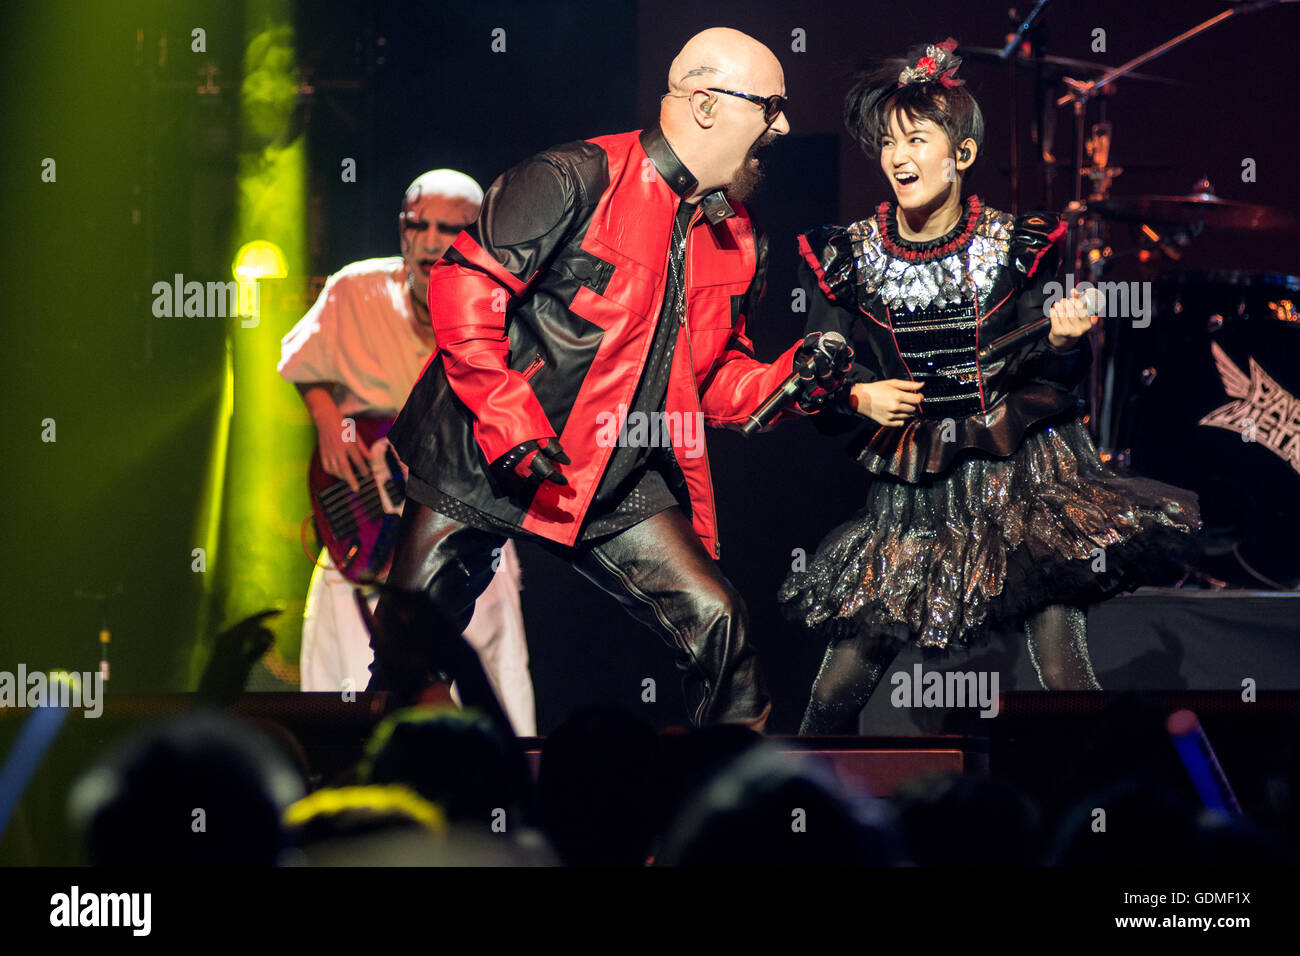 Babymetal Stock Photos & Babymetal Stock Images - Alamy